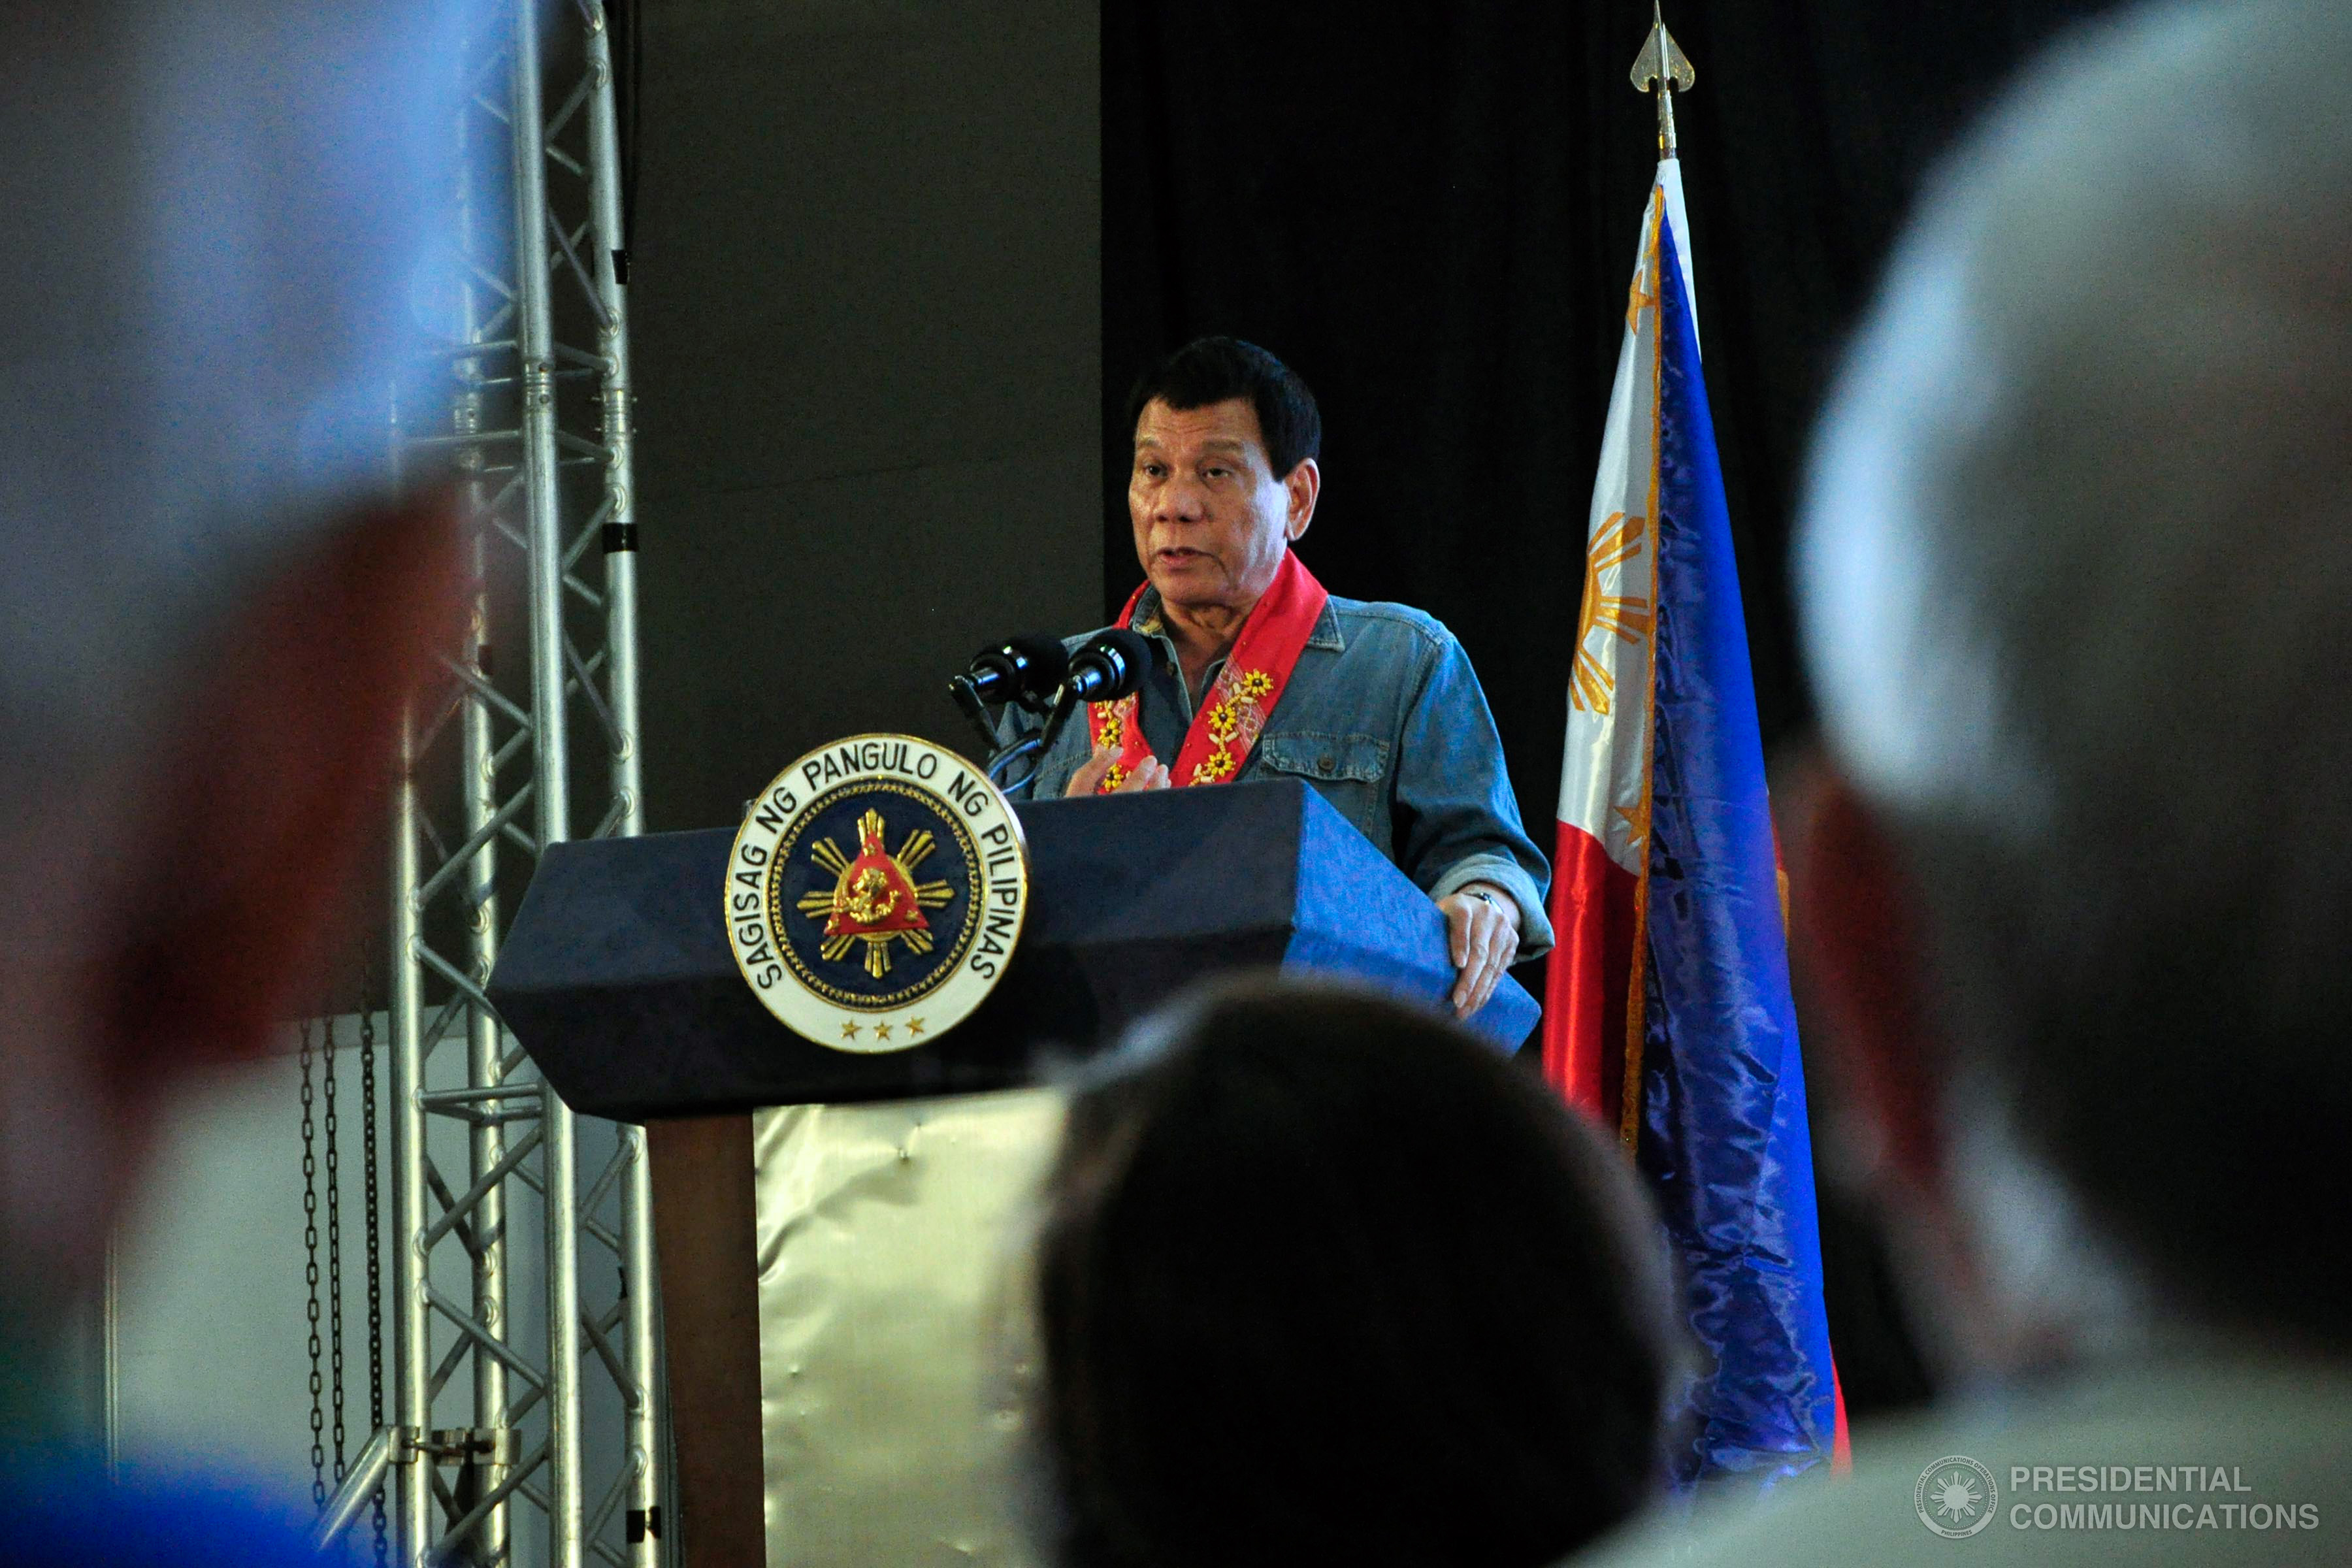 """Kris texted, saying: ""Huwag mo naman ipakulong ko si Noynoy"" (Please do not imprison Noynoy),"" President Duterte said in his speech during the official launching of the Bureau of International Revenue (BIR)'s Large Tax Service (LTS) 2017 tax campaign at the Philippine International Convention Center (PICC). (Photo: JOEY FRANCIS DALUMPINES/Presidential Photo)"